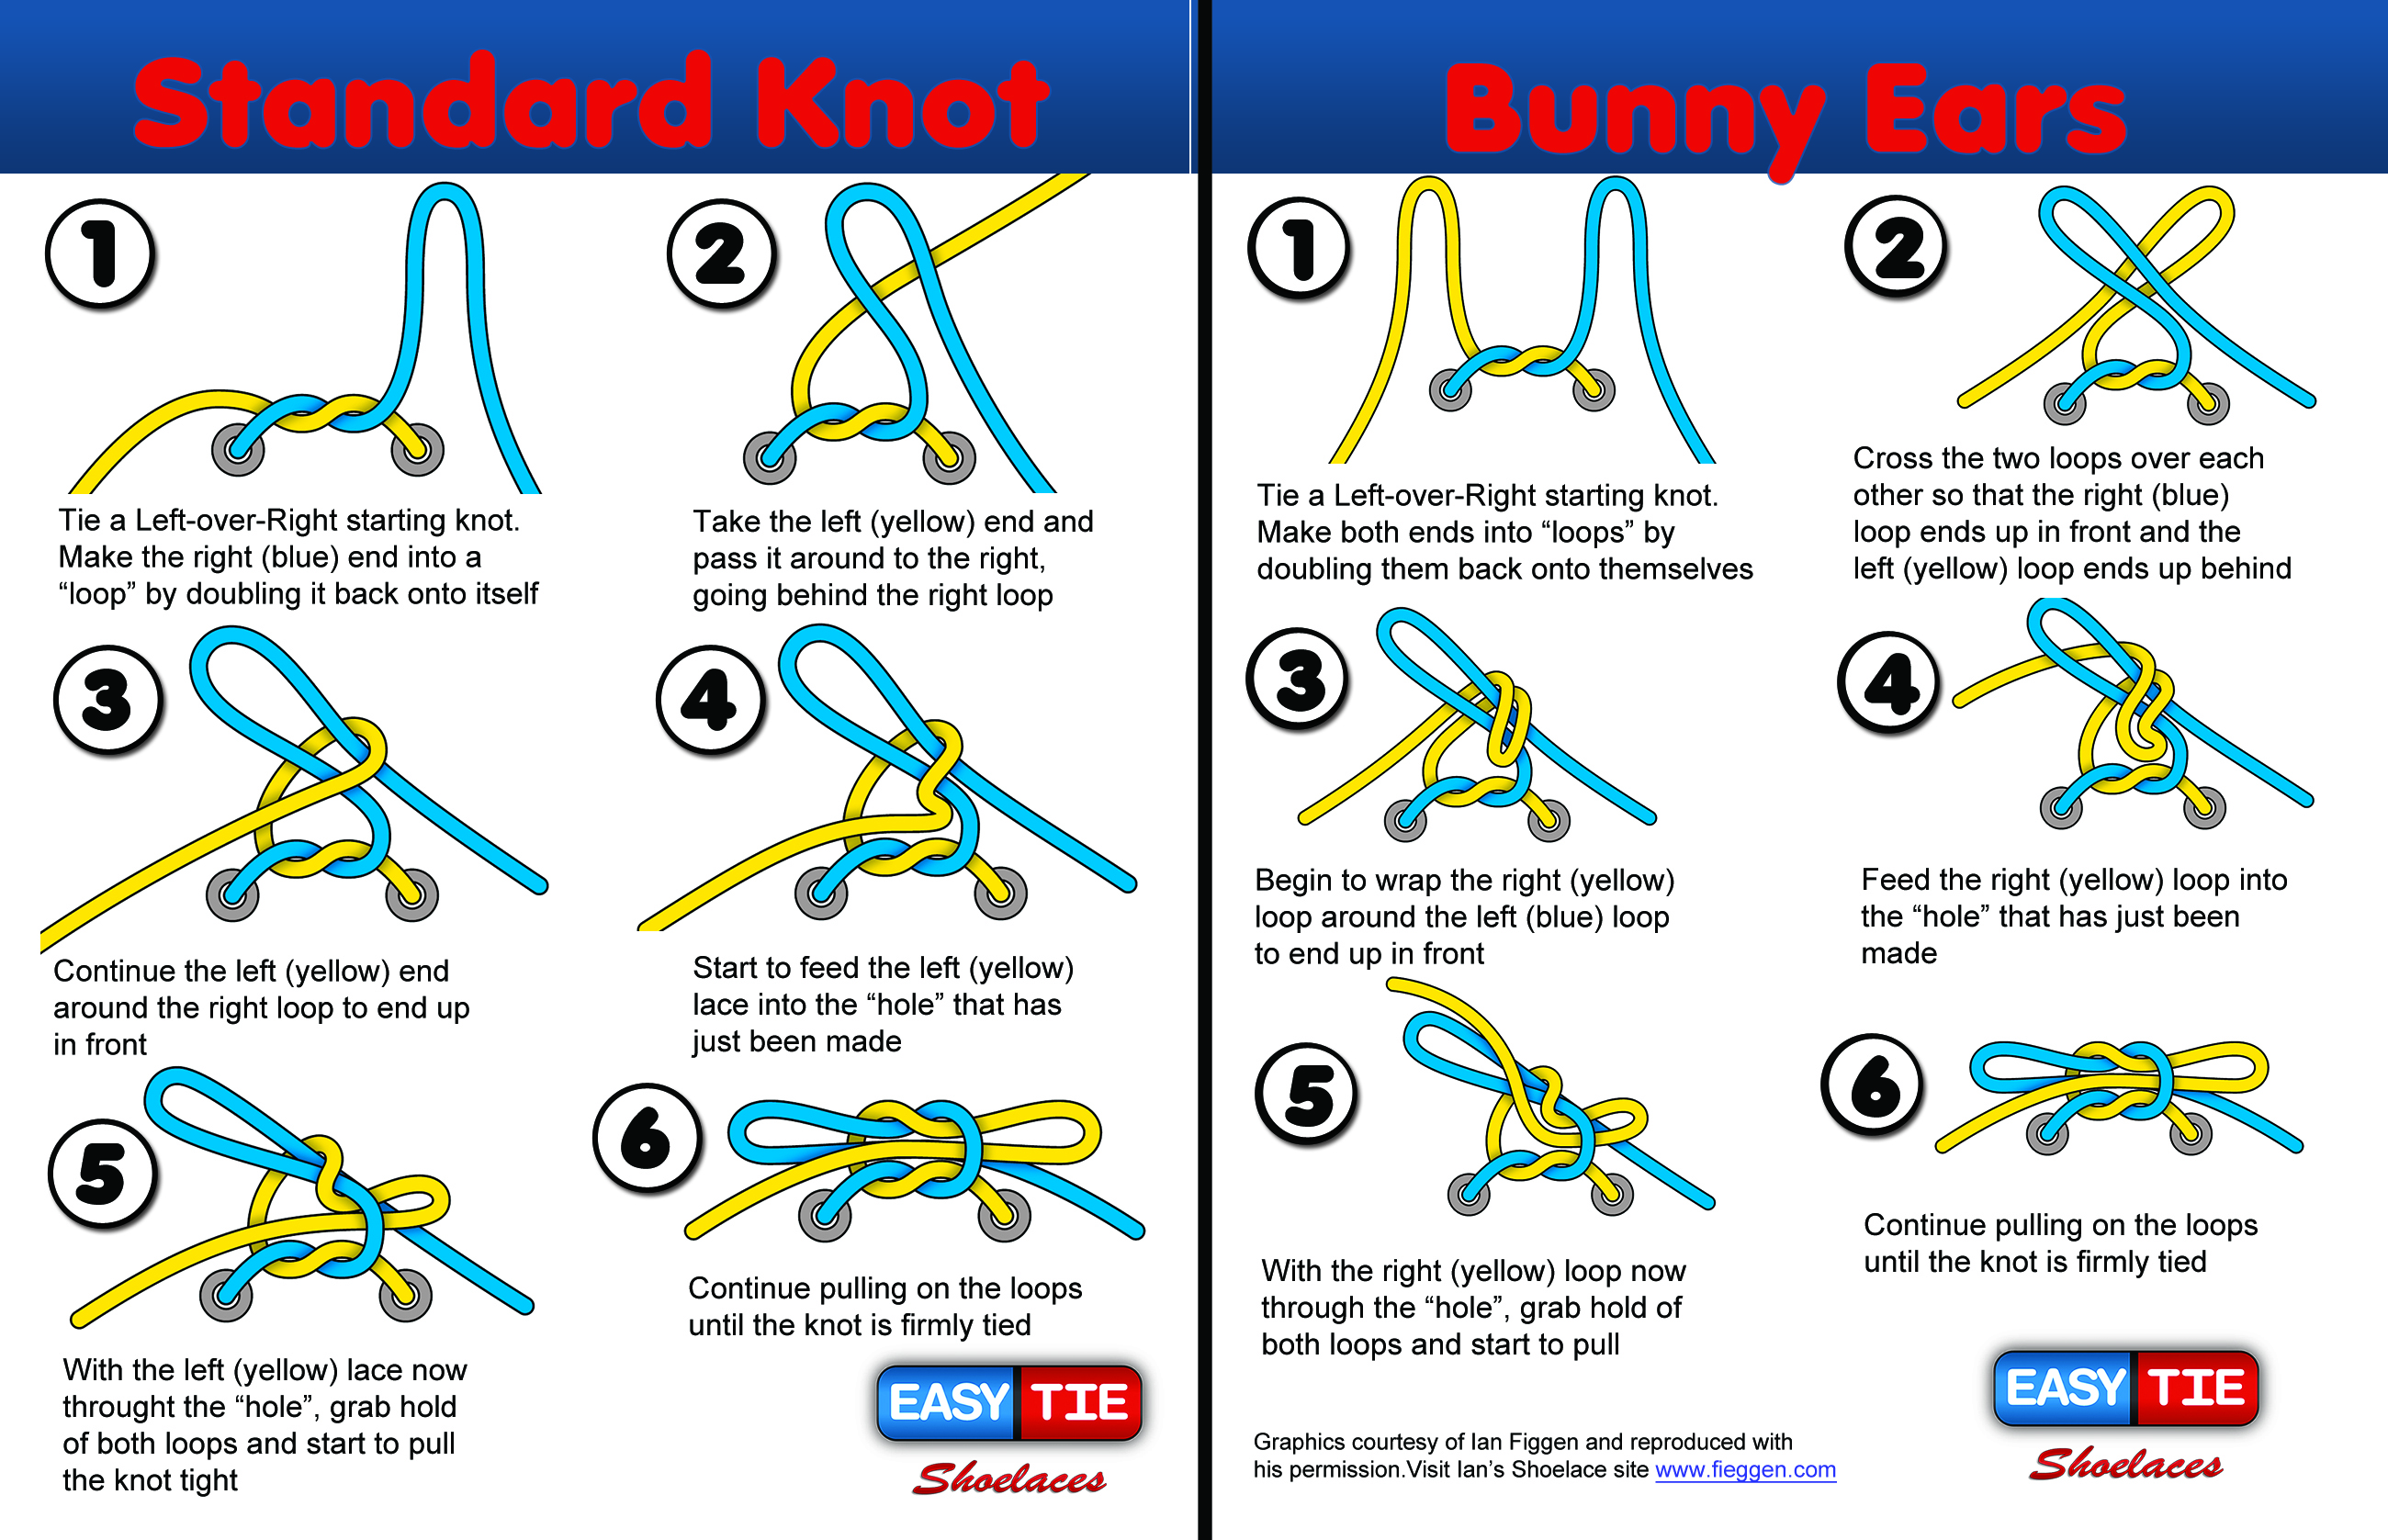 How to Tie a Knot on a Hook